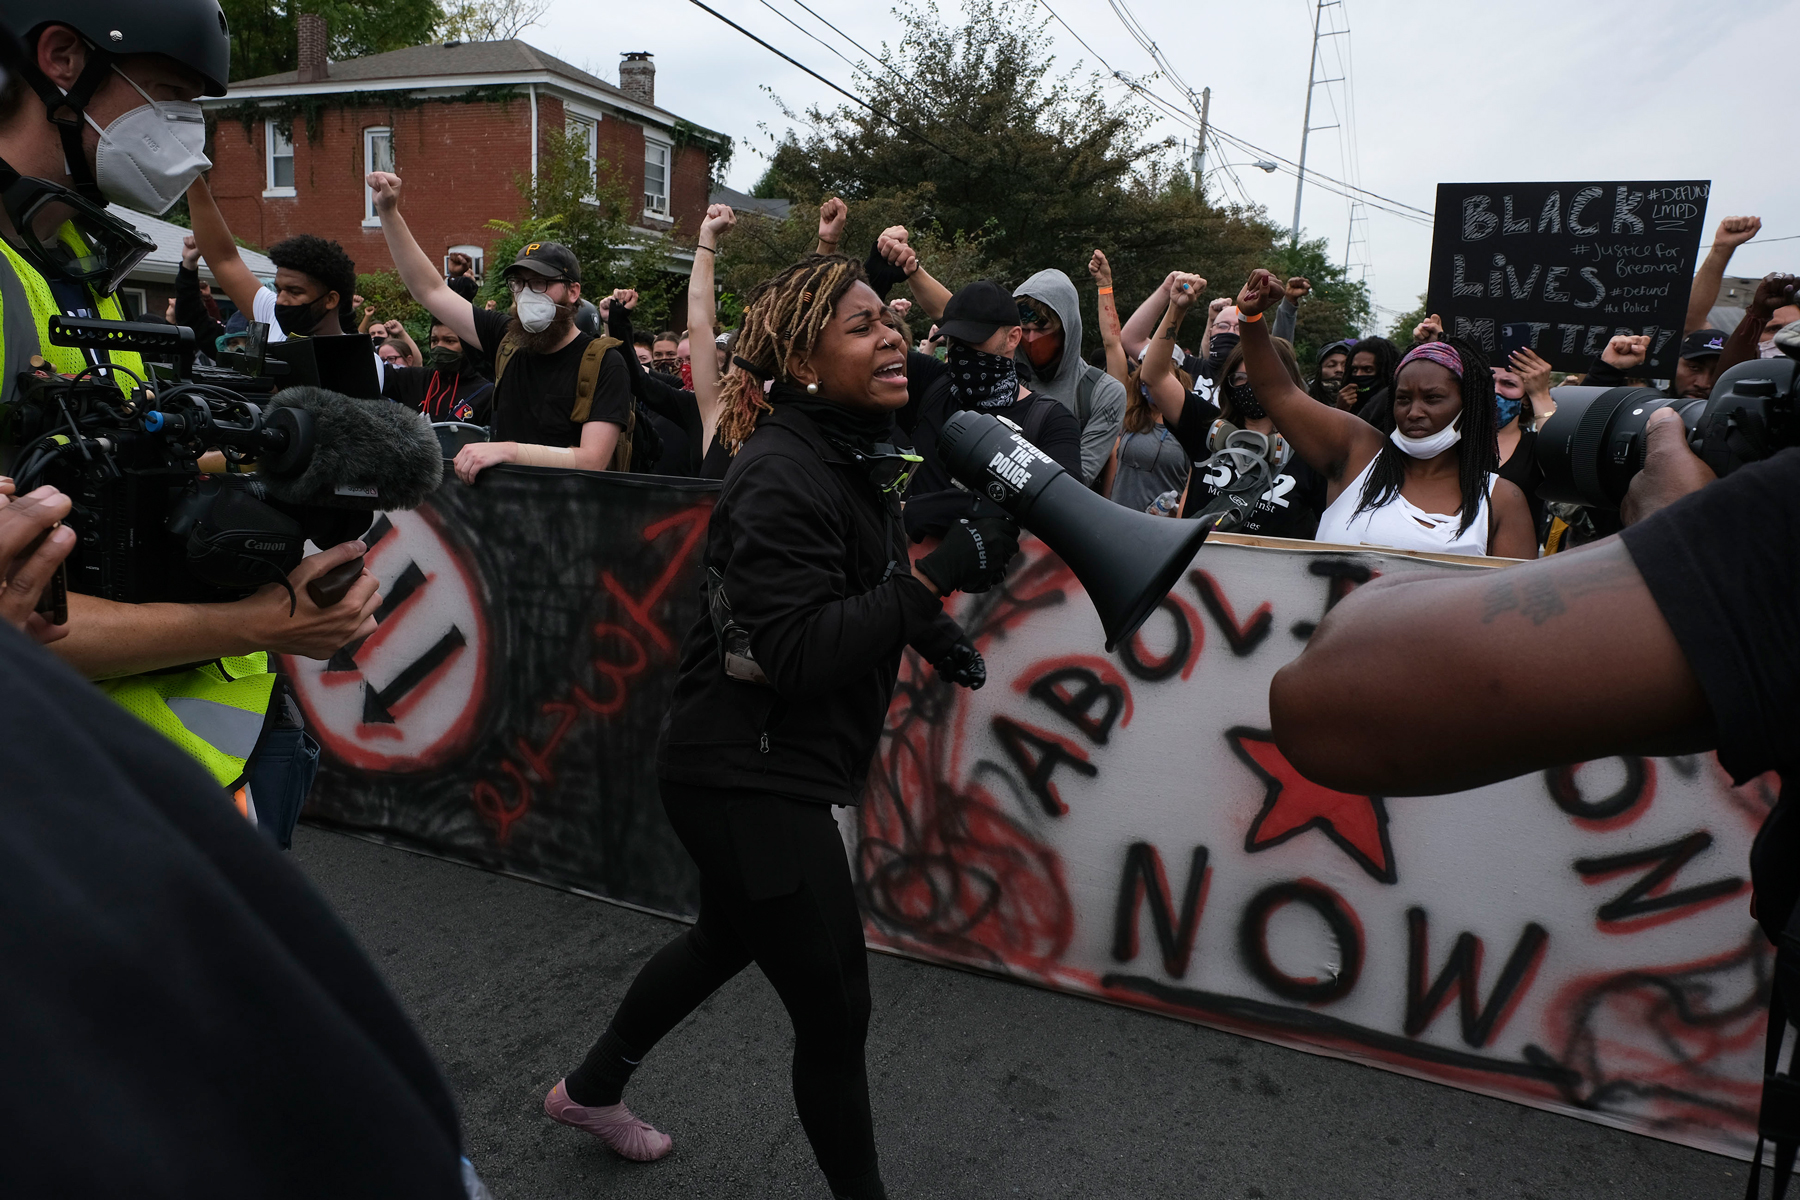 "A protestor calls for the crowd to ""Say Her Name Breonna Taylor"" while marching in downtown Louisville, Kentucky, on September 23, 2020, after a judge announced the charges brought by a grand jury against Detective Brett Hankison, one of three police officers involved in the fatal shooting of Breonna Taylor in March. - Hankison was charged today, September 23, with three counts of ""wanton endangerment"" in connection with the shooting of Taylor, a 26-year-old black woman whose name has become a rallying cry for the Black Lives Matter movement. (Photo by Jeff Dean / AFP) (Photo by JEFF DEAN/AFP via Getty Images)"